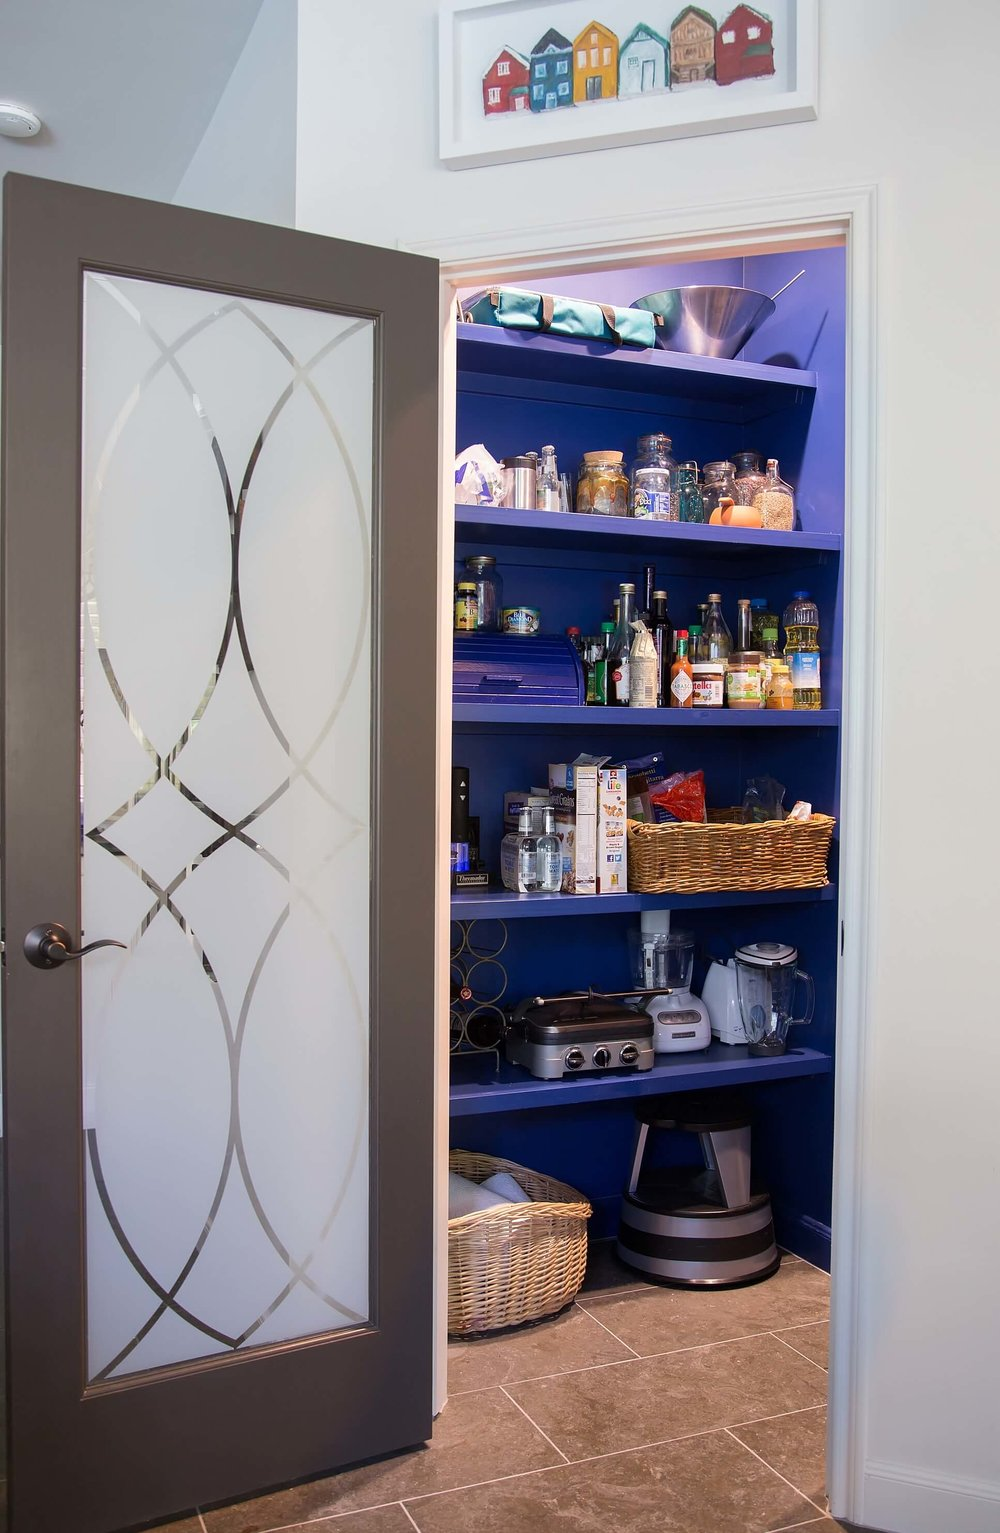 New indigo blue pantry w/ etched glass look French door - pattern done in window film, Before and after kitchen remodel, Carla Aston - Designer